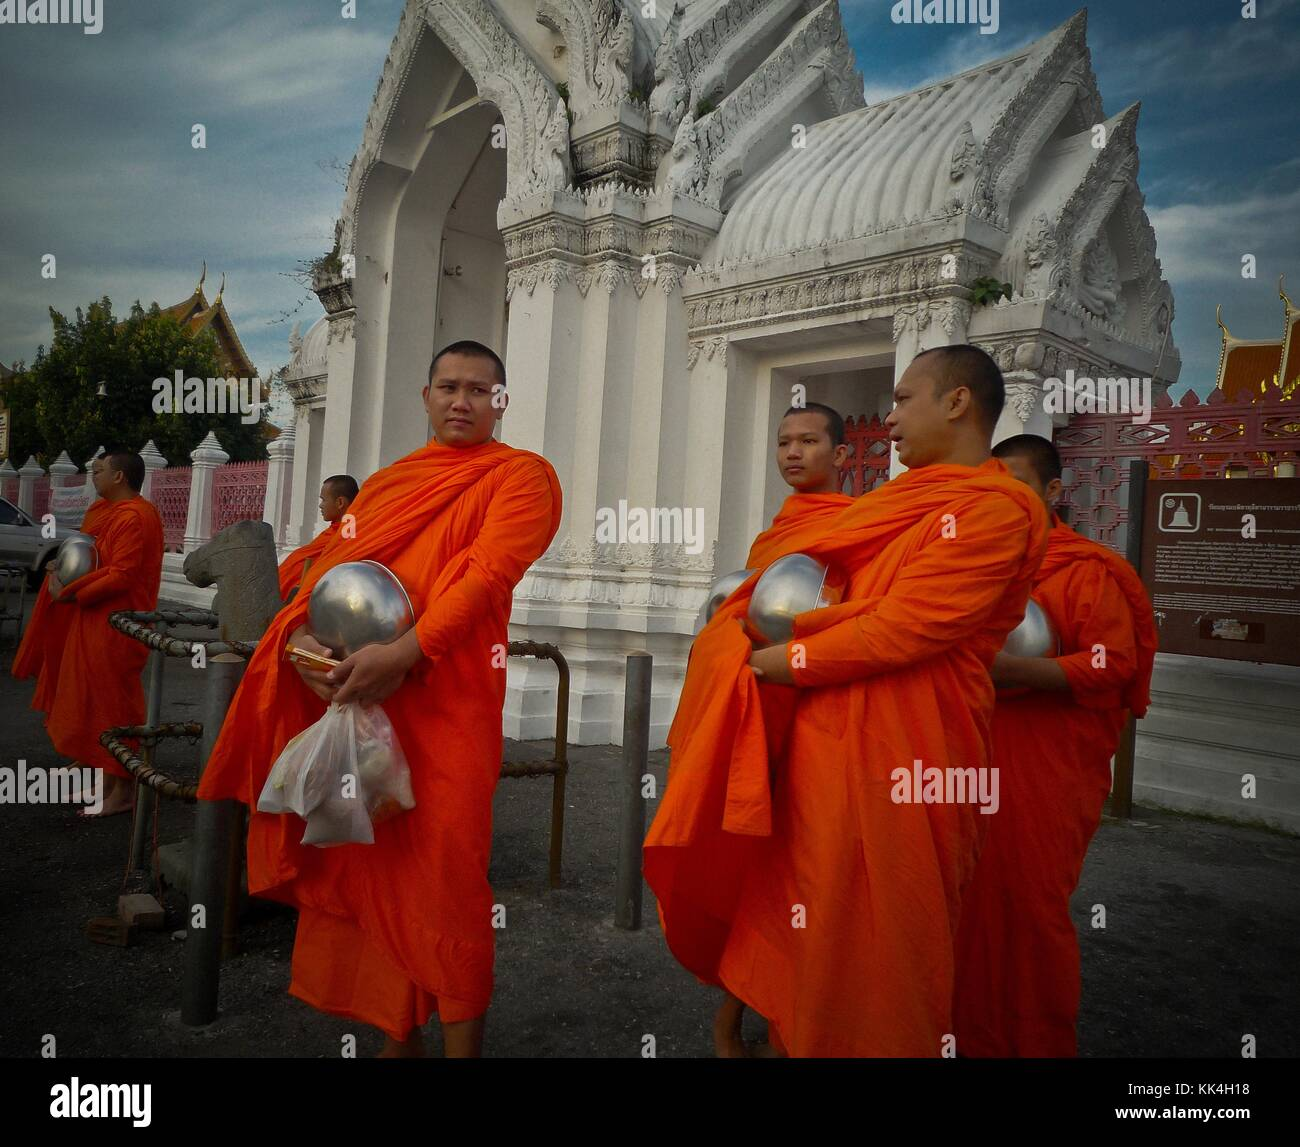 buddhist single men in poy sippi The prestigious louvre museum has had a grand opening of its abu dhabi branch but even before the inauguration, charges started flying that the artefacts on display.